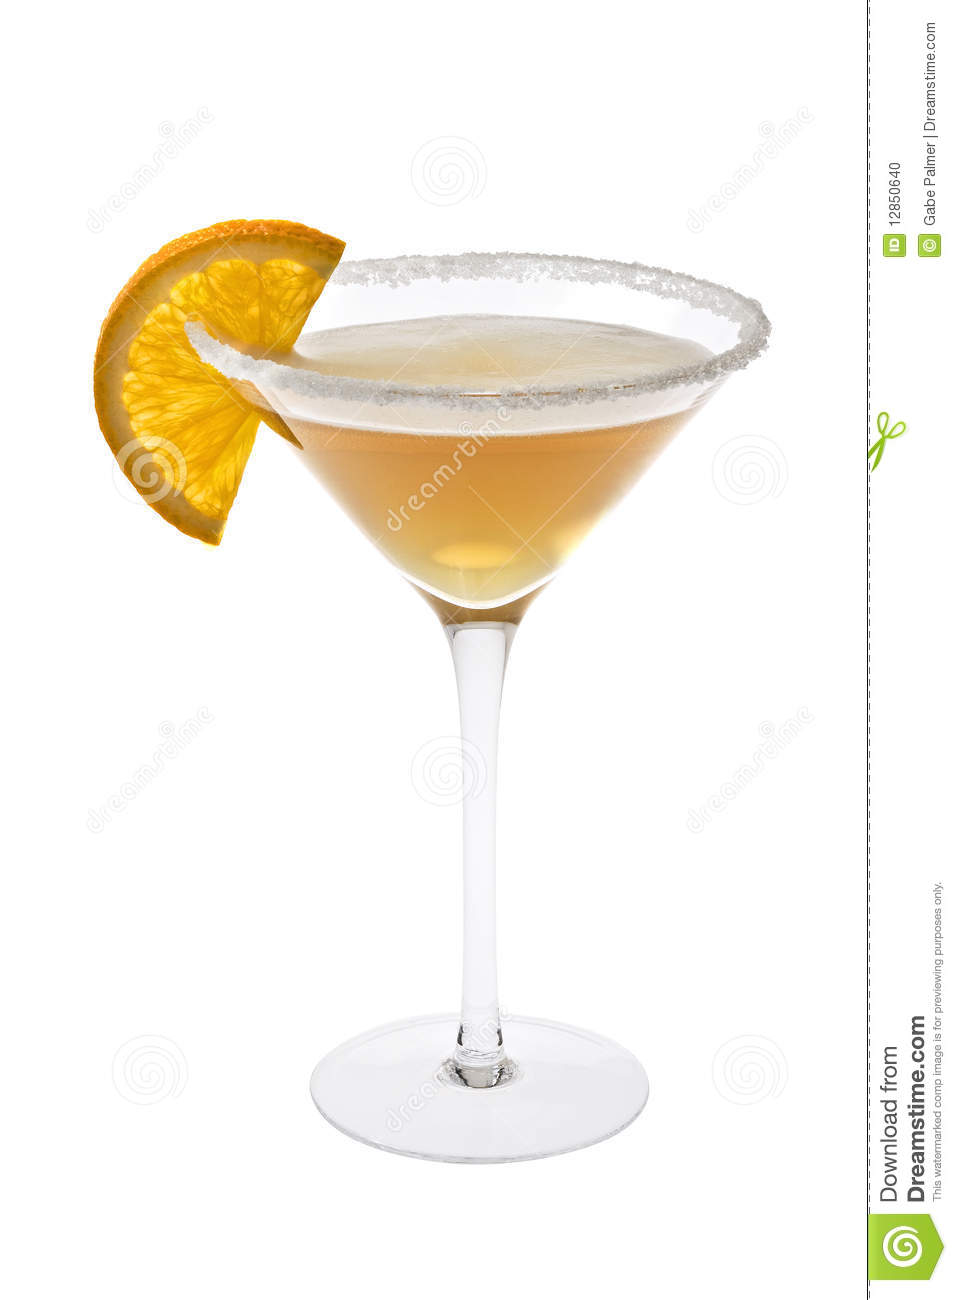 Sidecar Cocktail Stock Photo - Image: 12850640